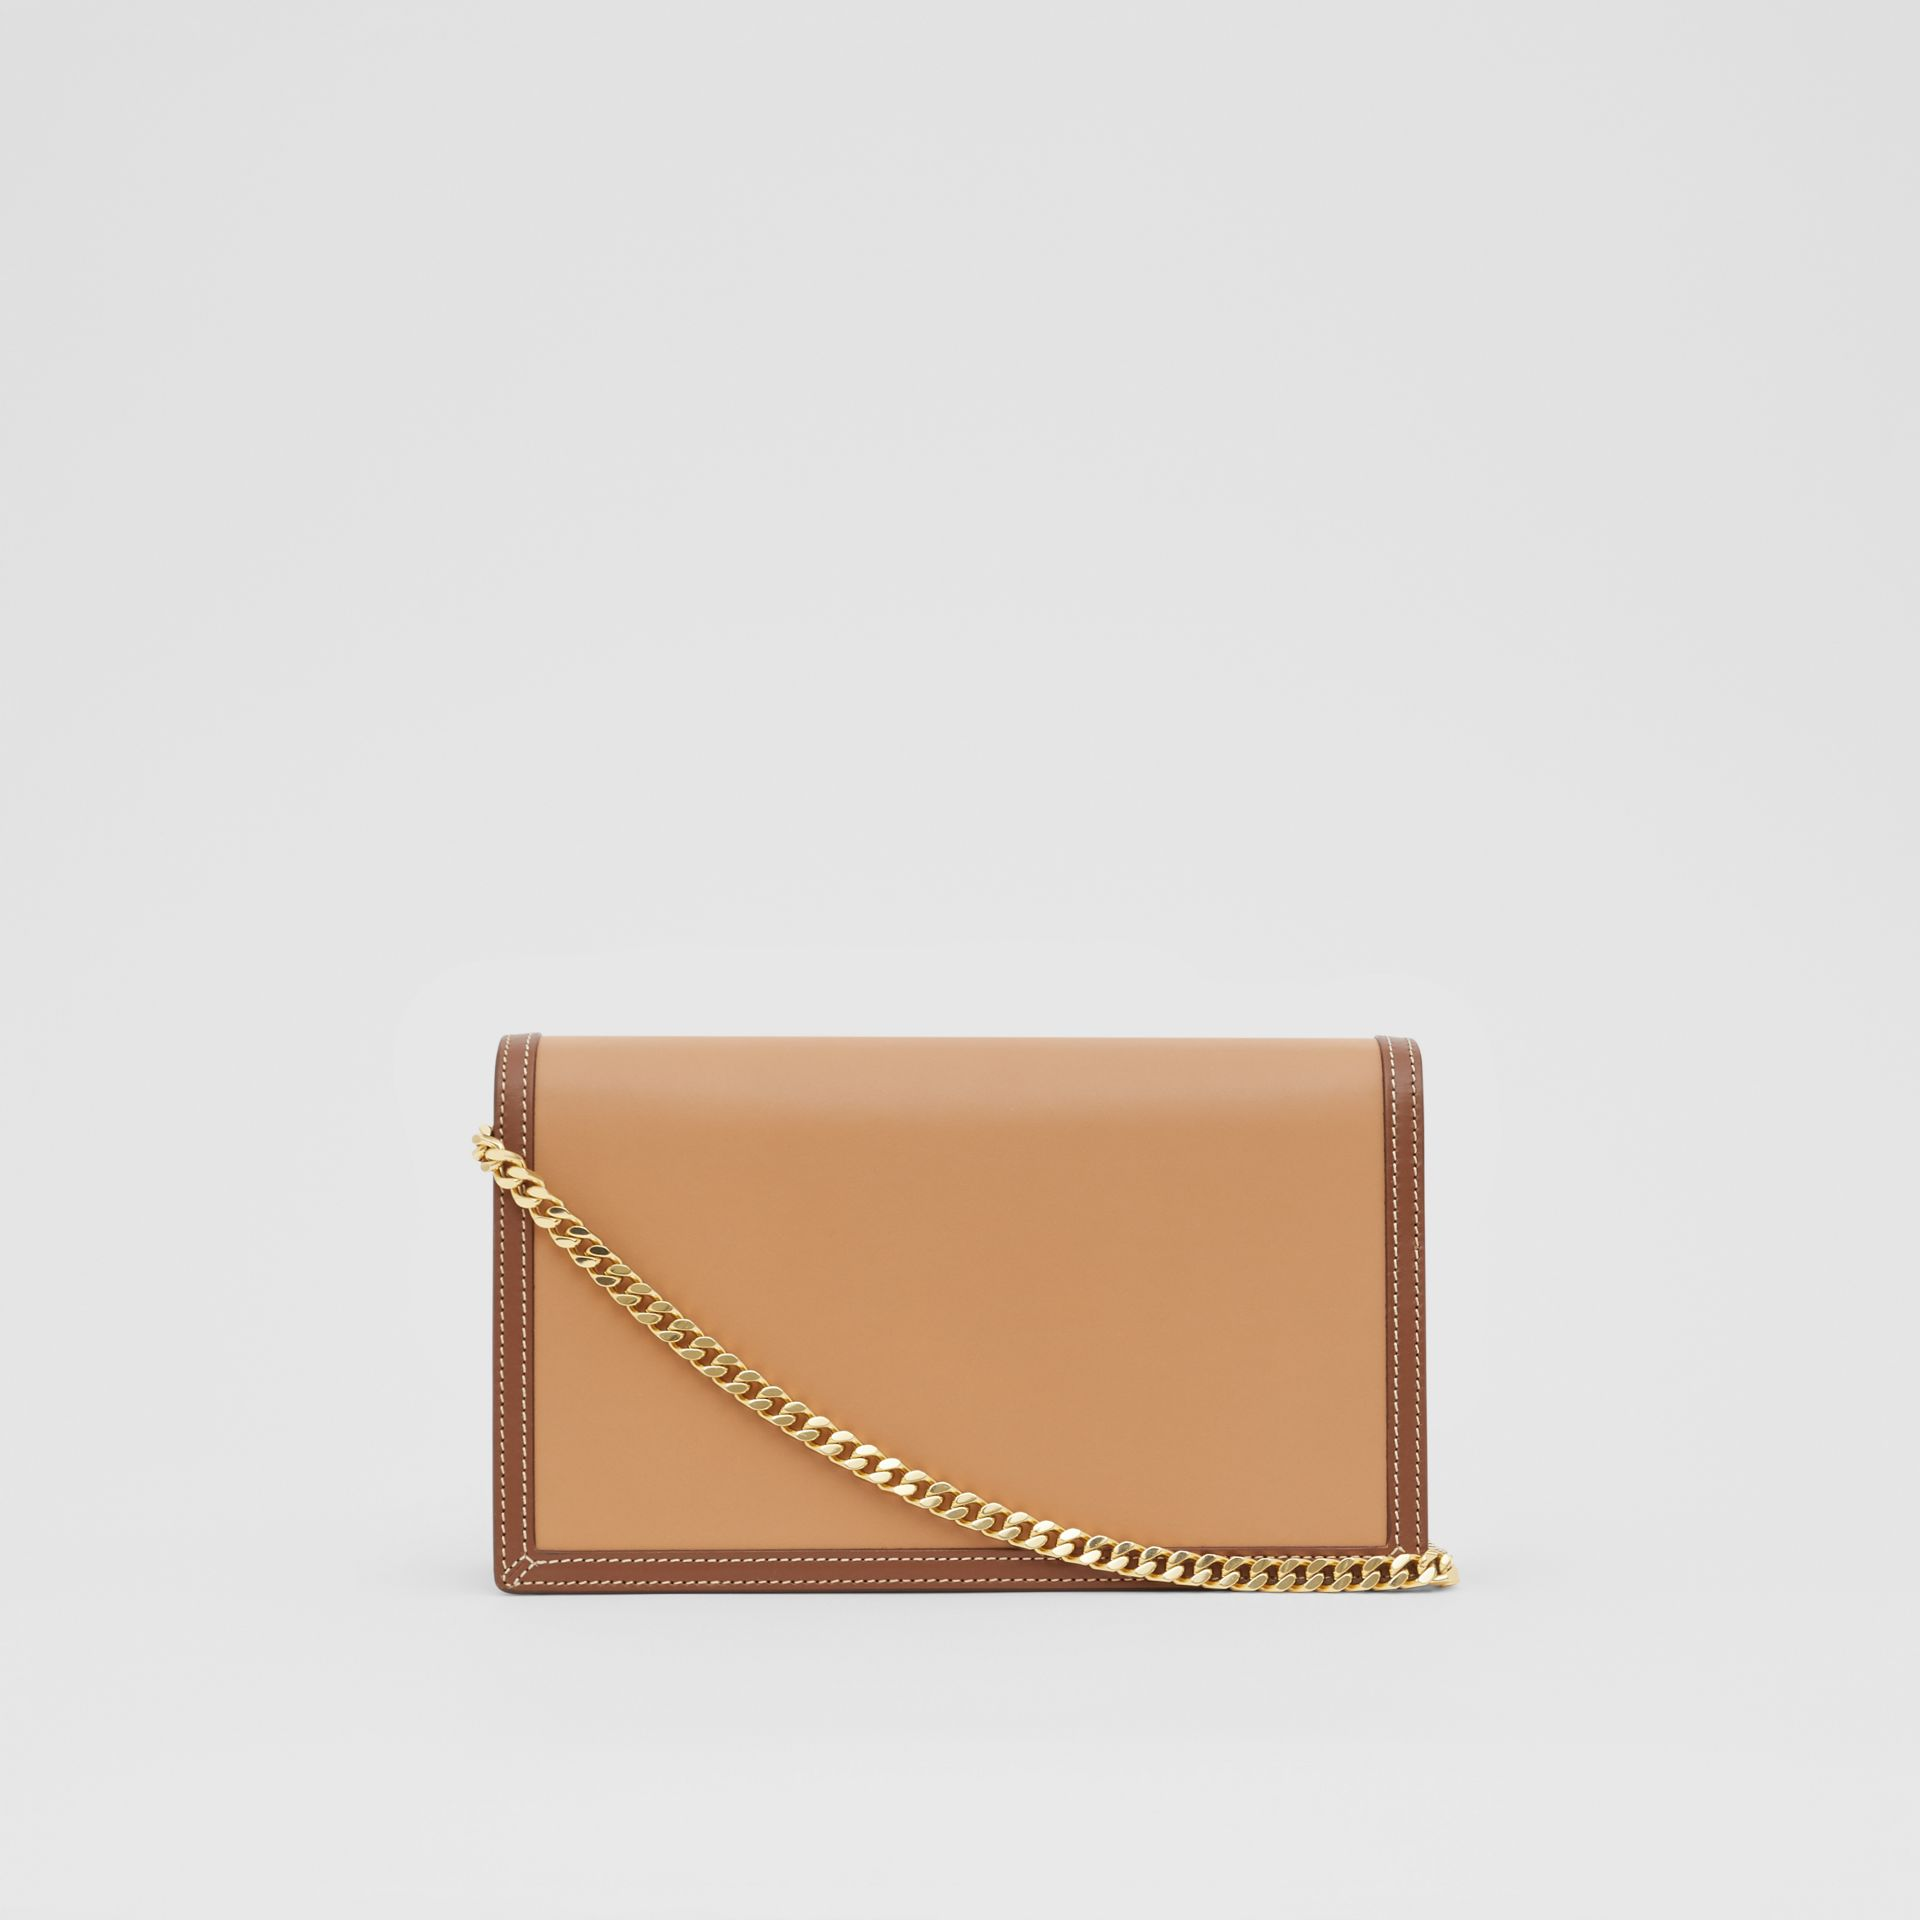 Small Two-tone Leather TB Envelope Clutch in Malt Brown - Women | Burberry - gallery image 6